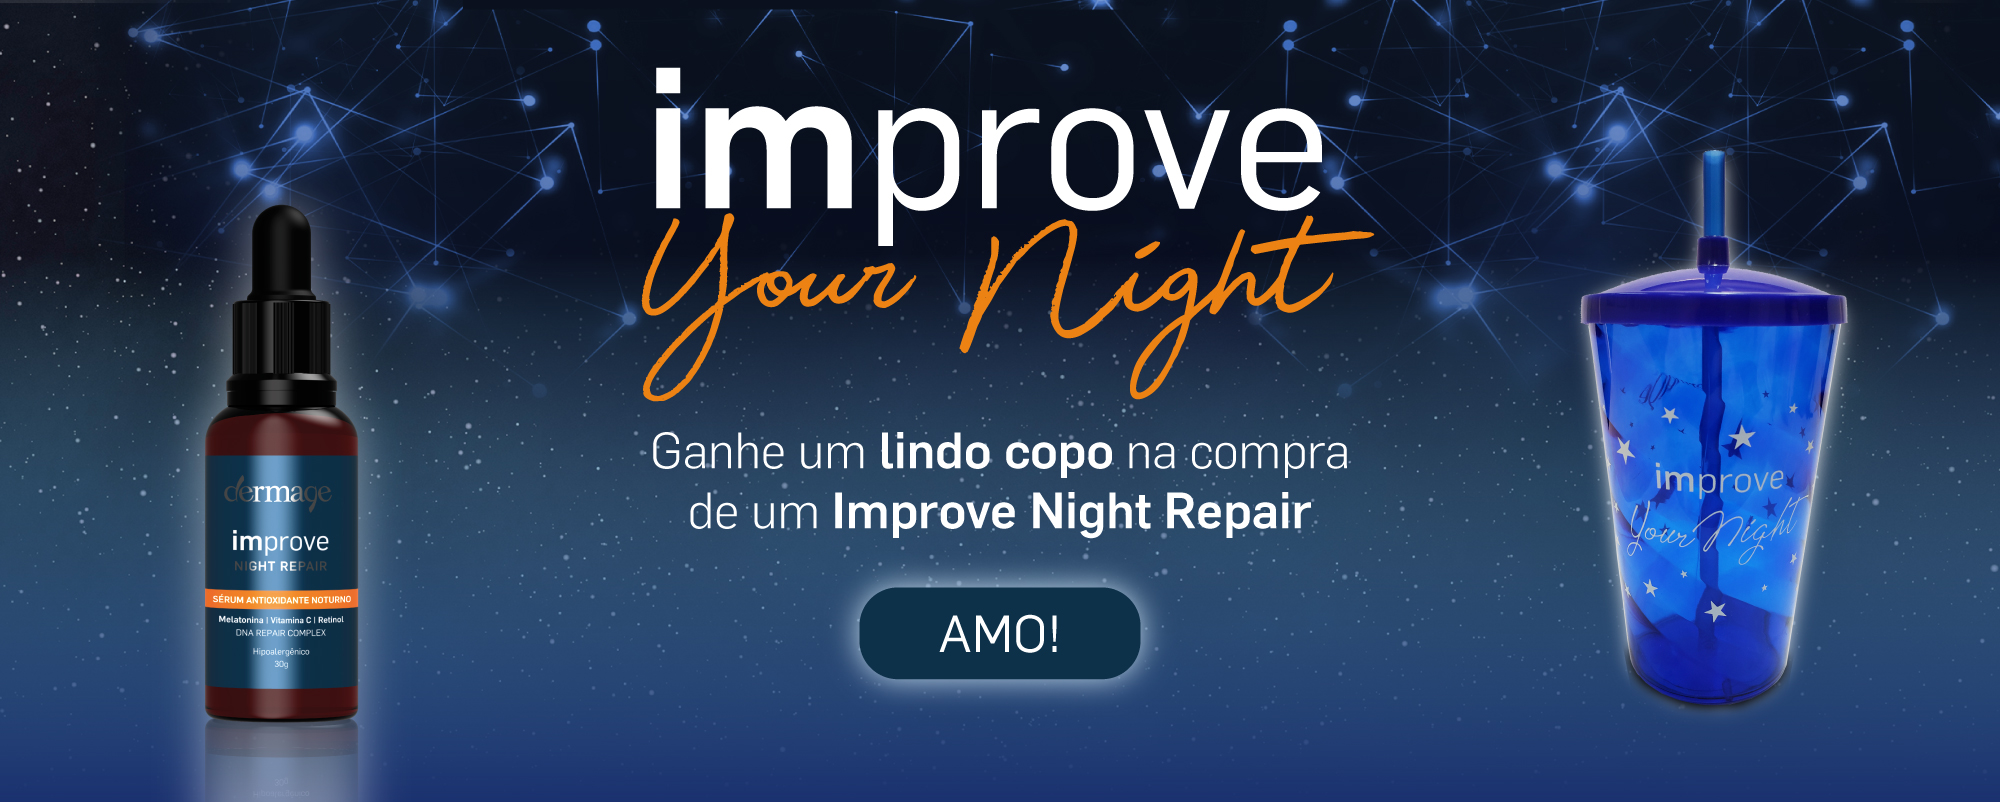 Improve your night